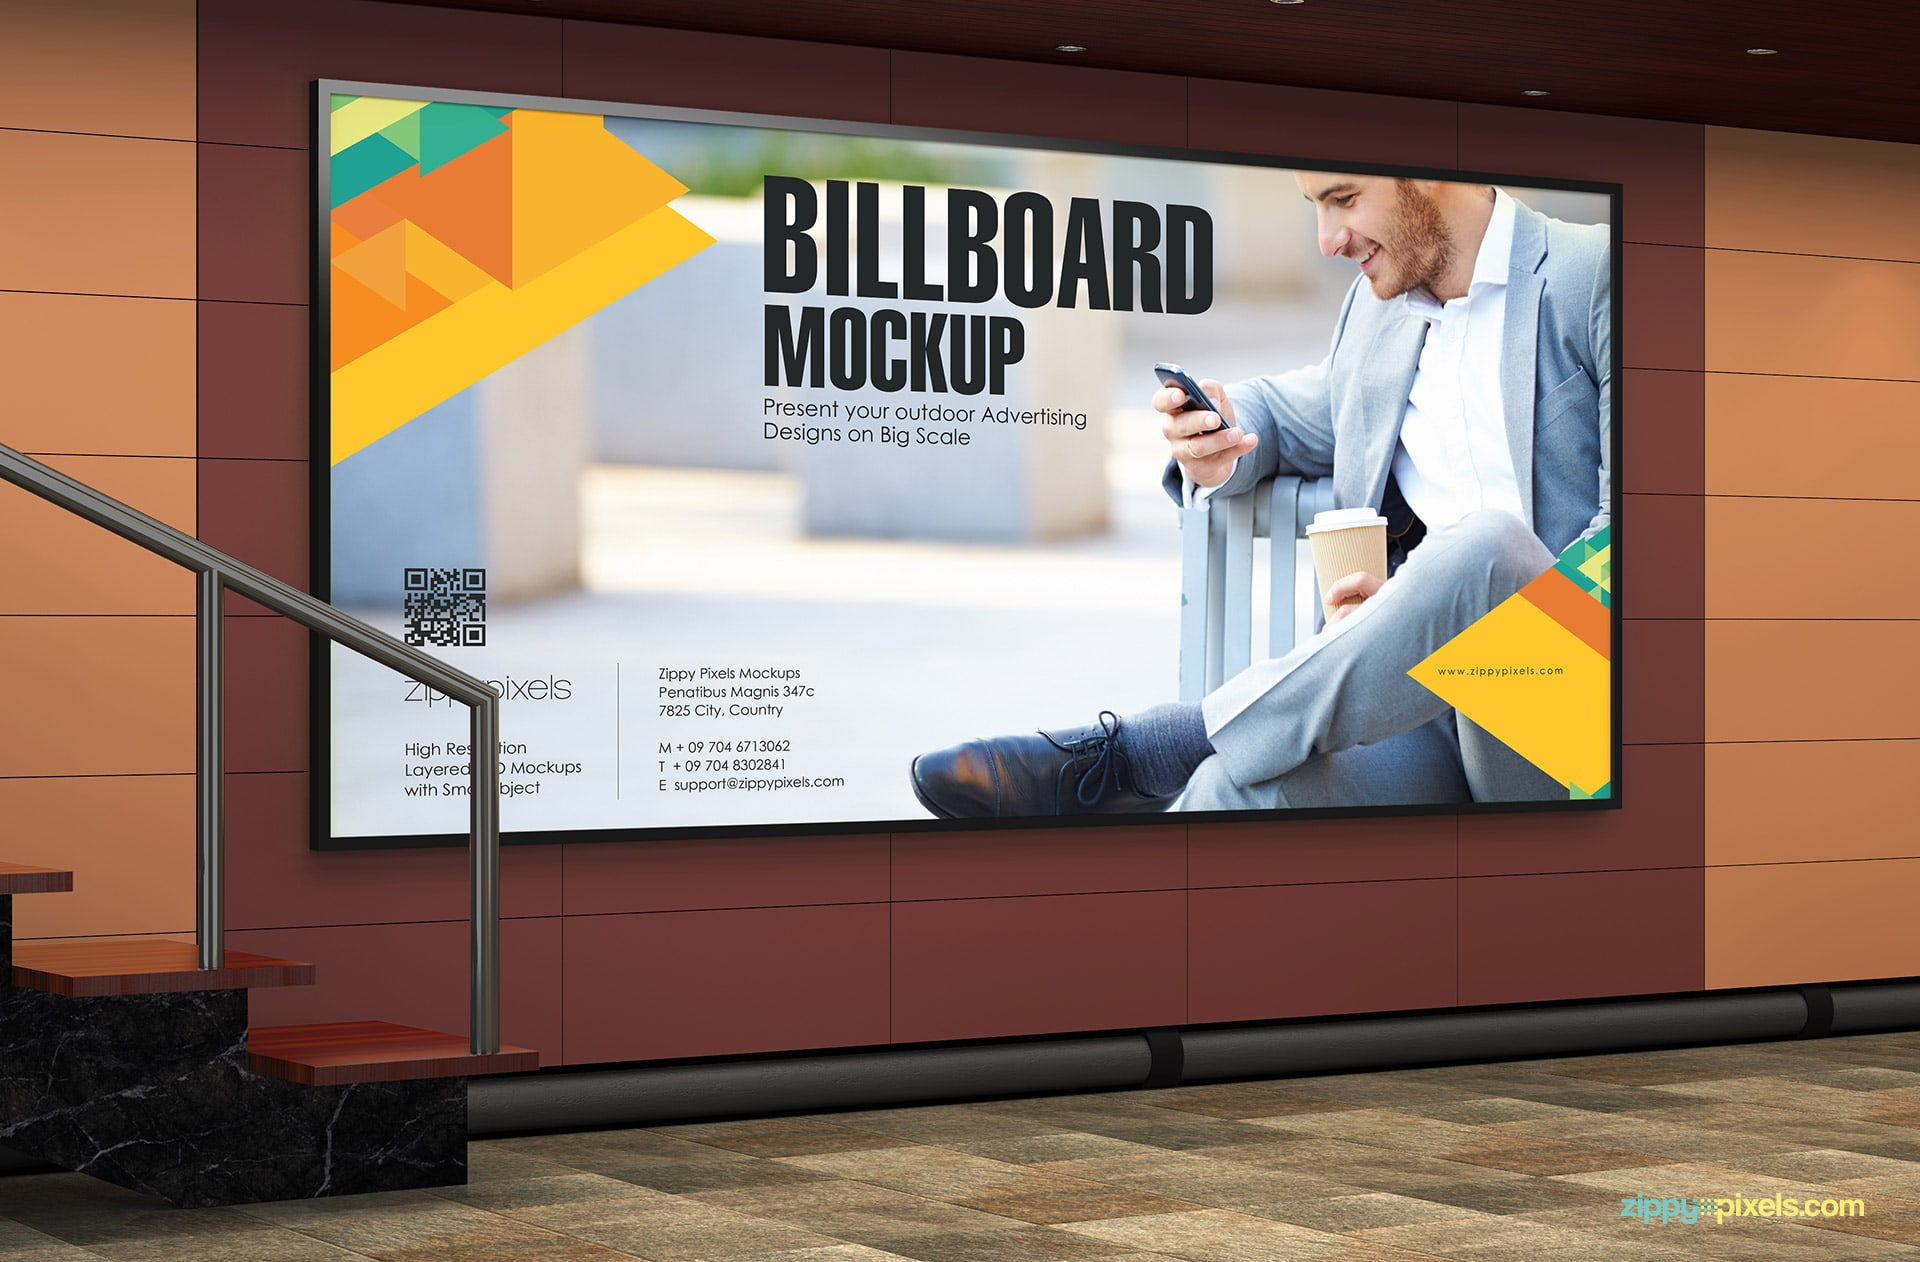 Wide billboard mockup psd in a subway setting.